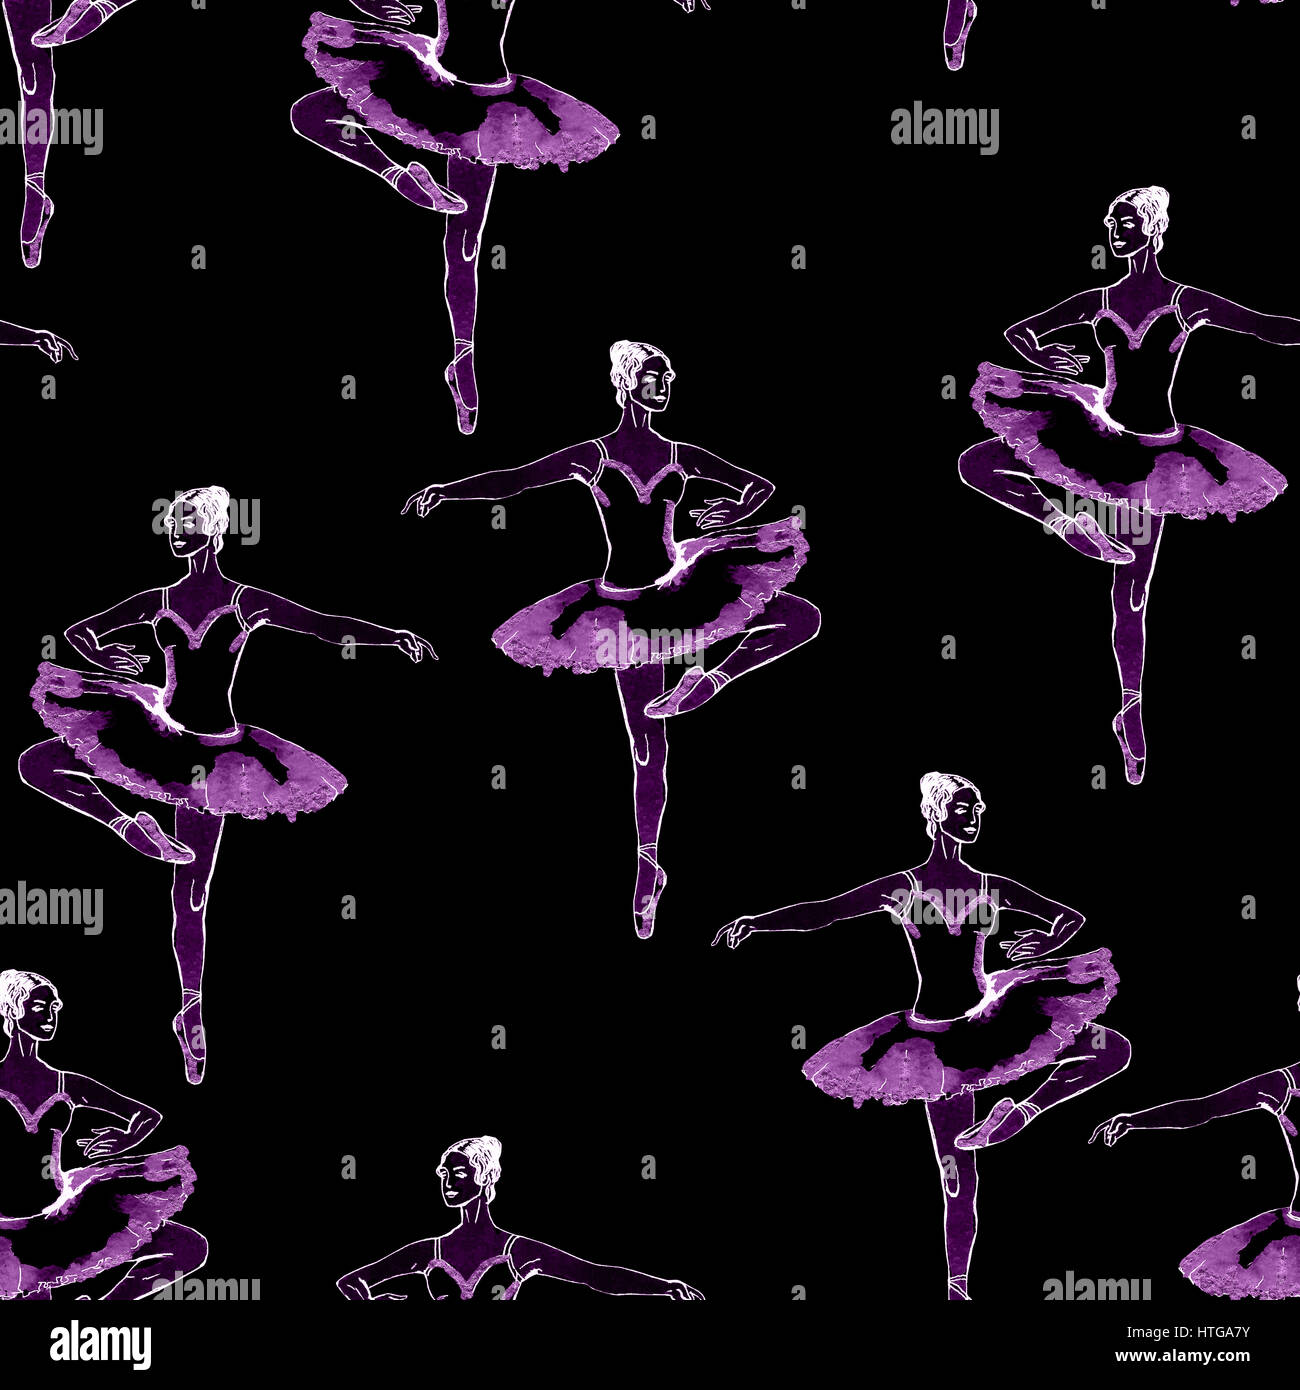 Seamless pattern of ballet dancers royalty free stock photography - Seamless Pattern Of Purple Ballet Dancers Freehand Drawing Isolated On Black Background Fabric Texture Wallpaper Tabuday Alamy Stock Photo